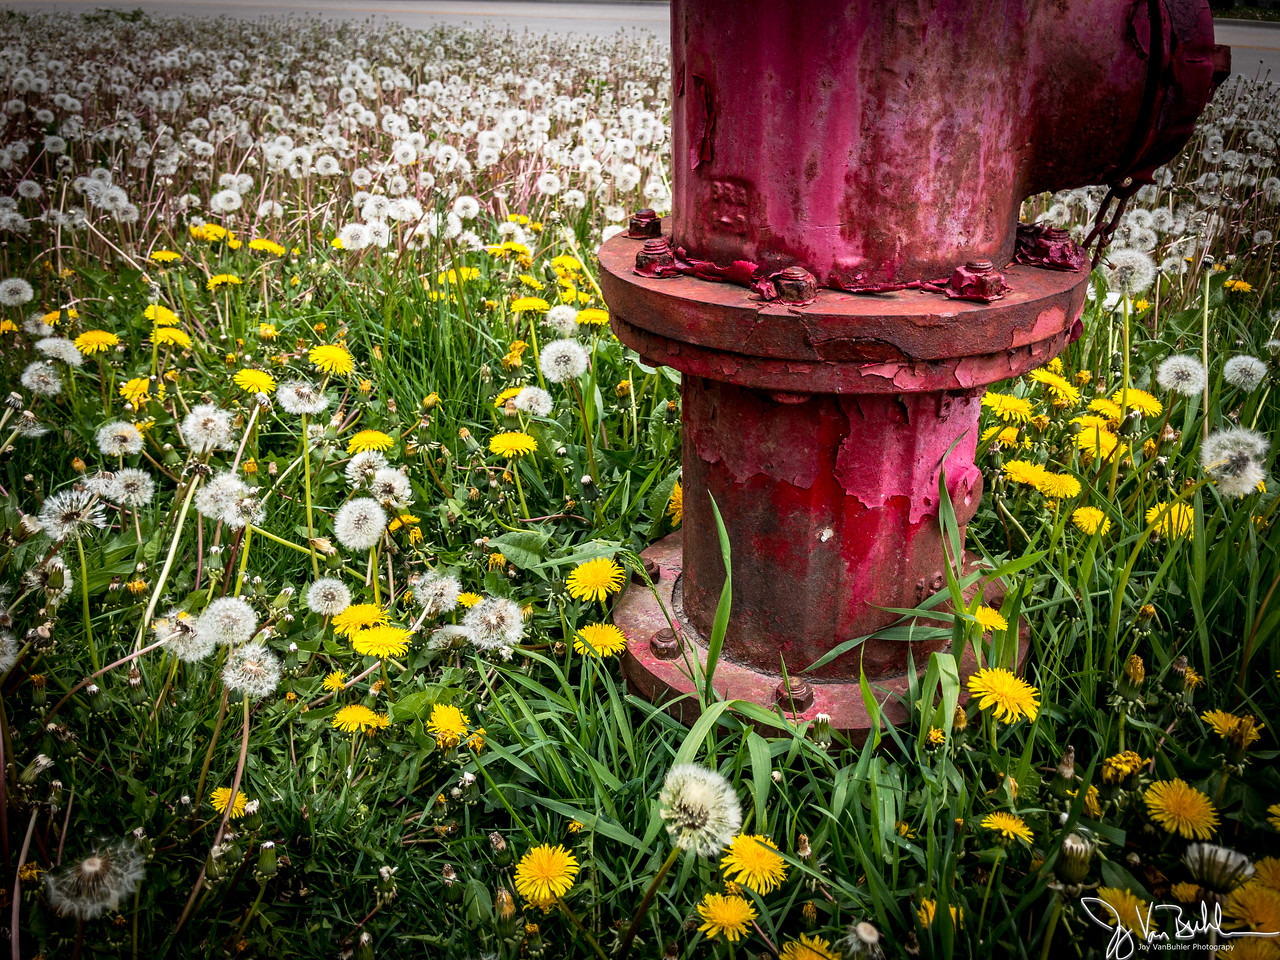 126/365 - Fire Hydrant and Dandelions